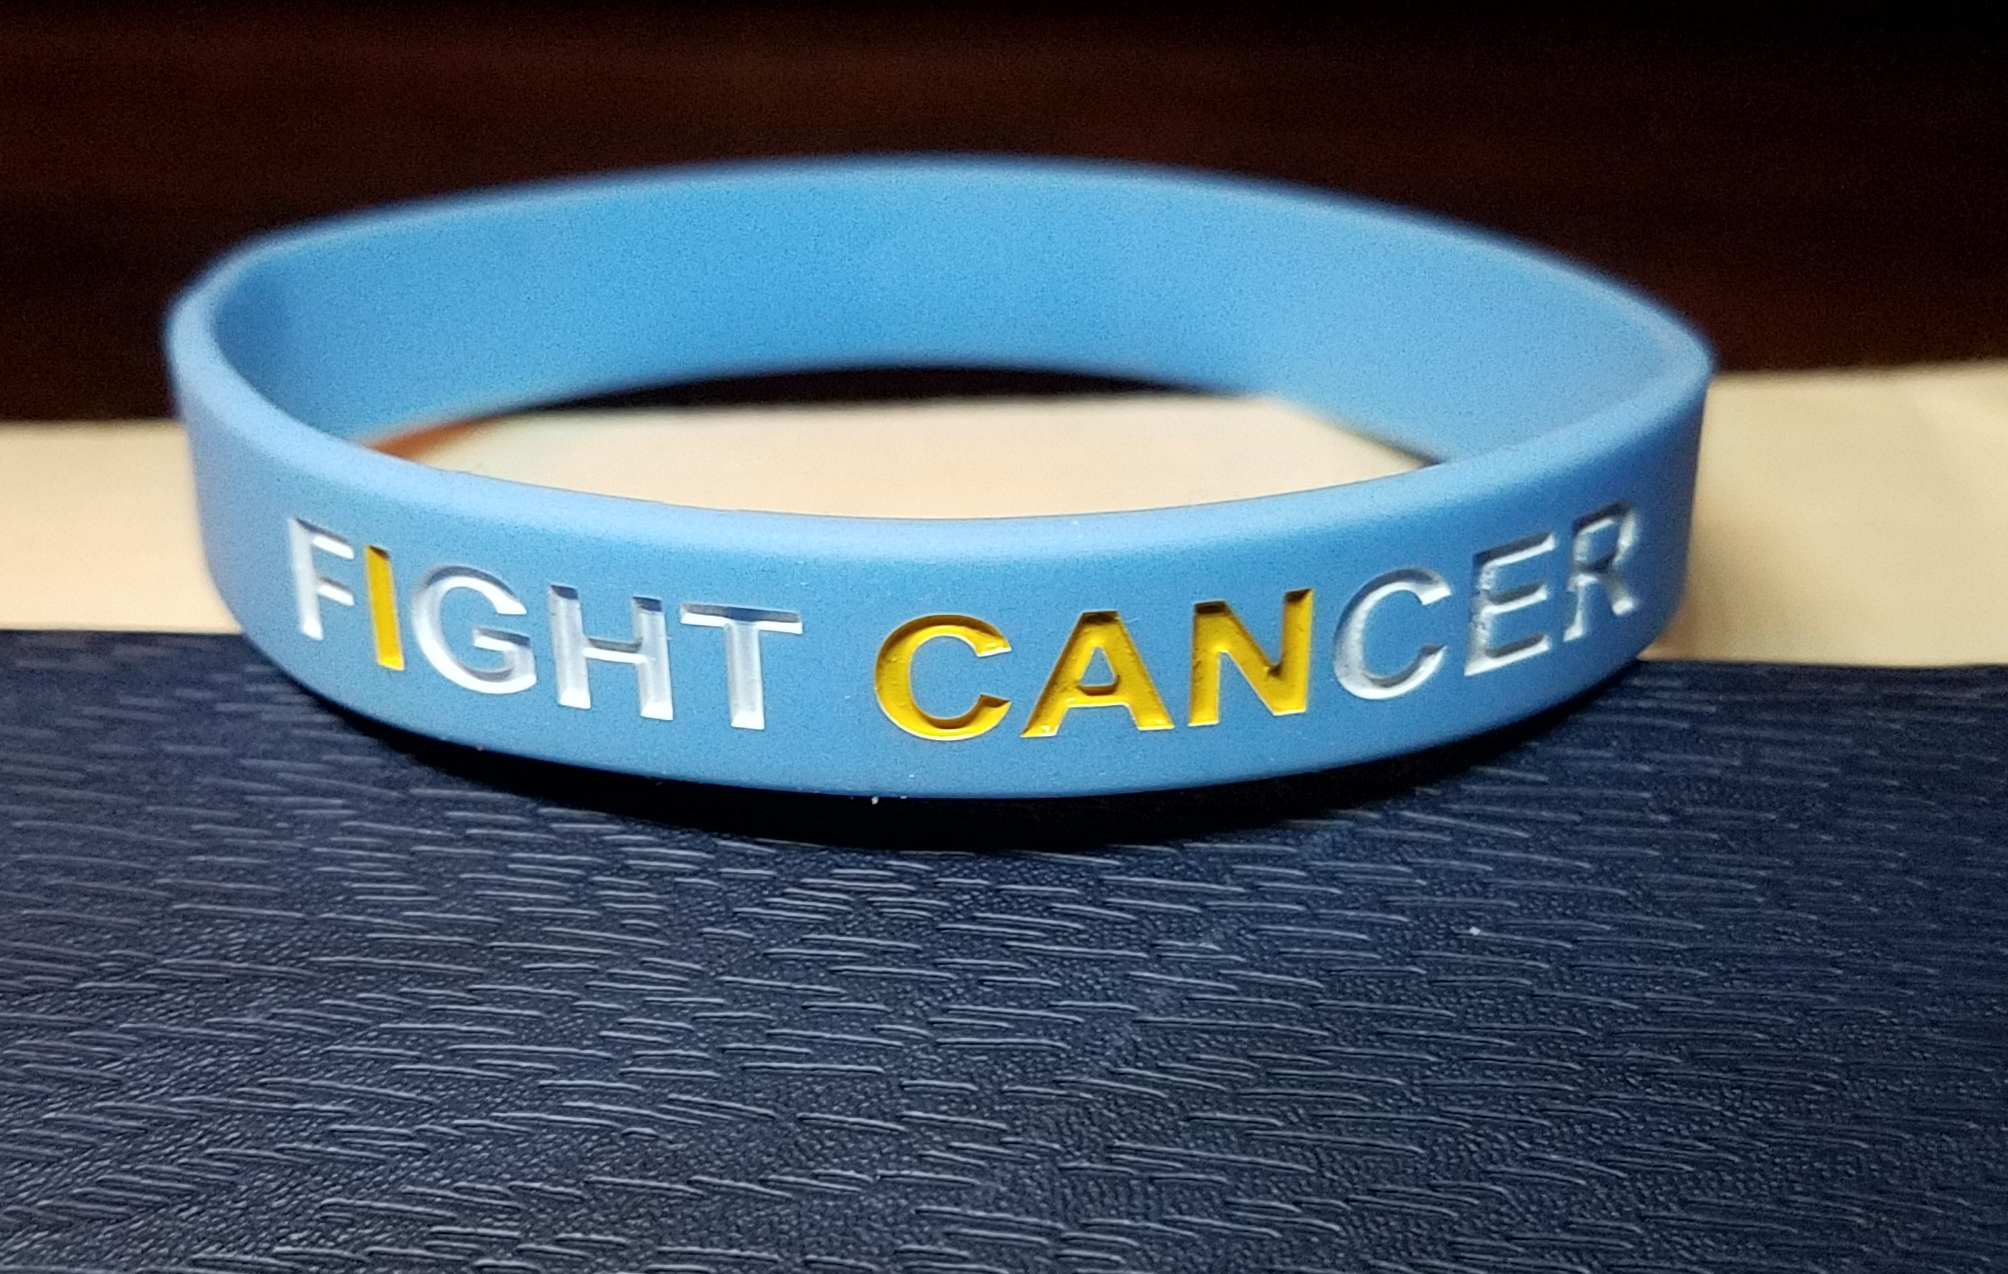 I often wear This wristband from the cancer center where i'm being treated.